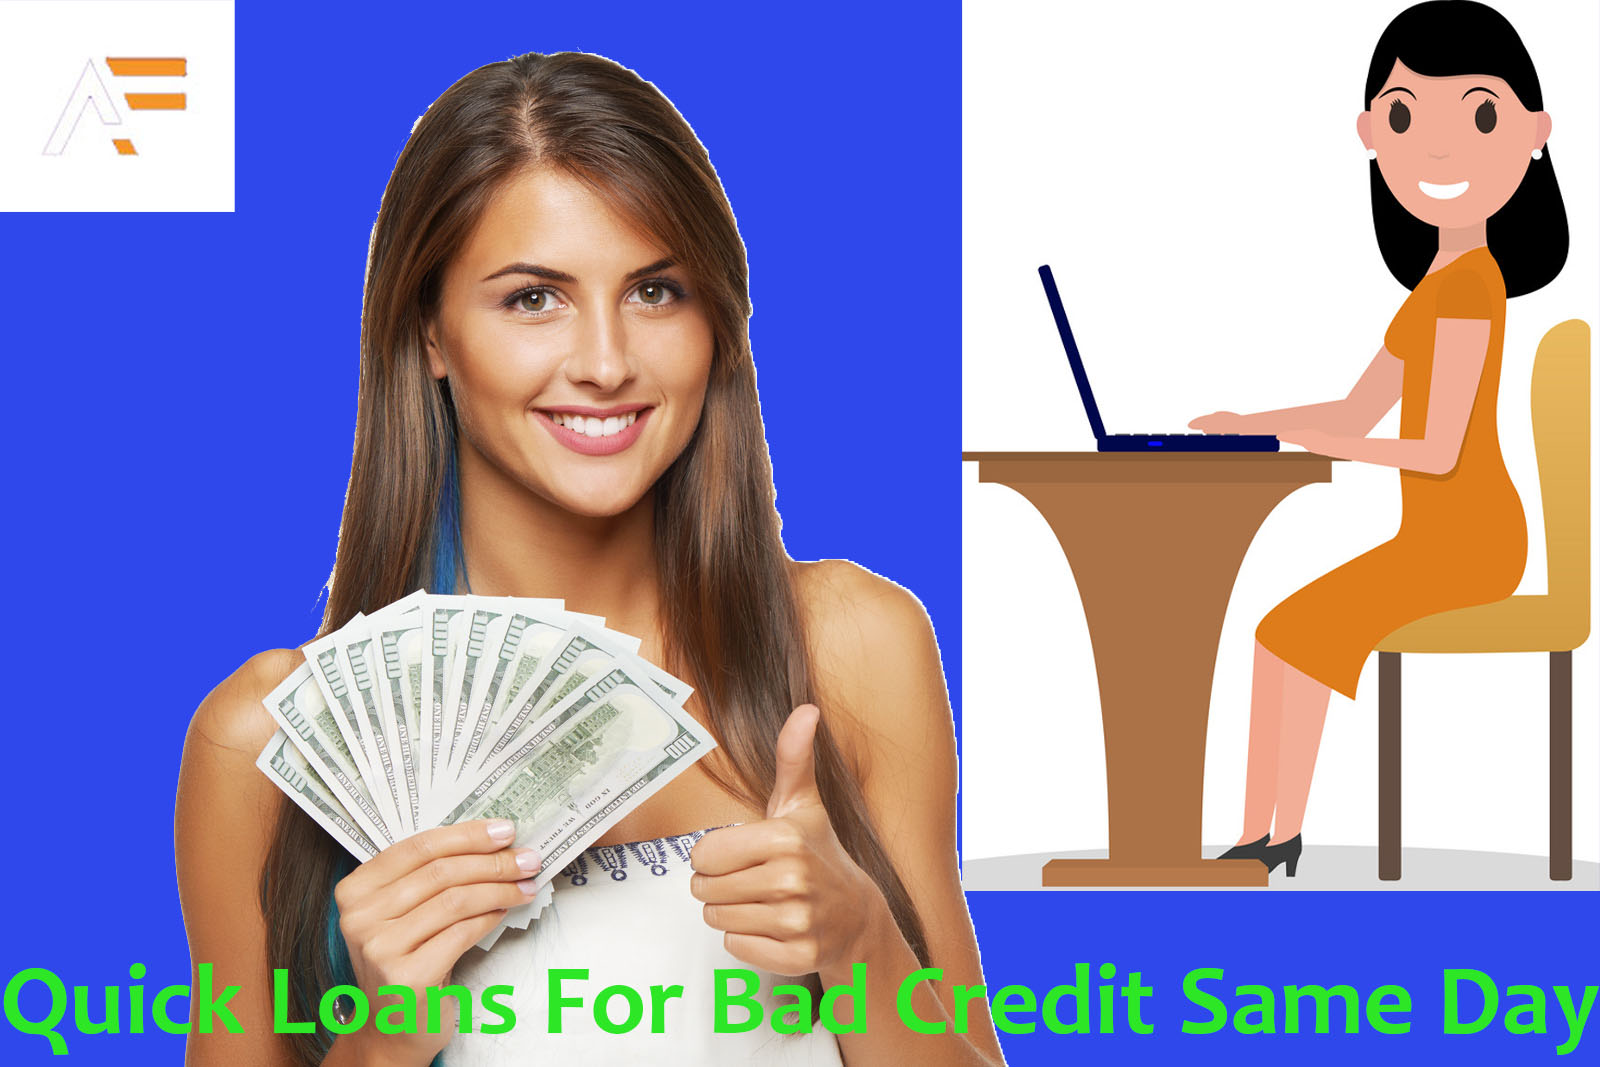 Unsecured Bad Credit Loans >> Quick Loans For Bad Credit Same Day Loans For Bad Credit